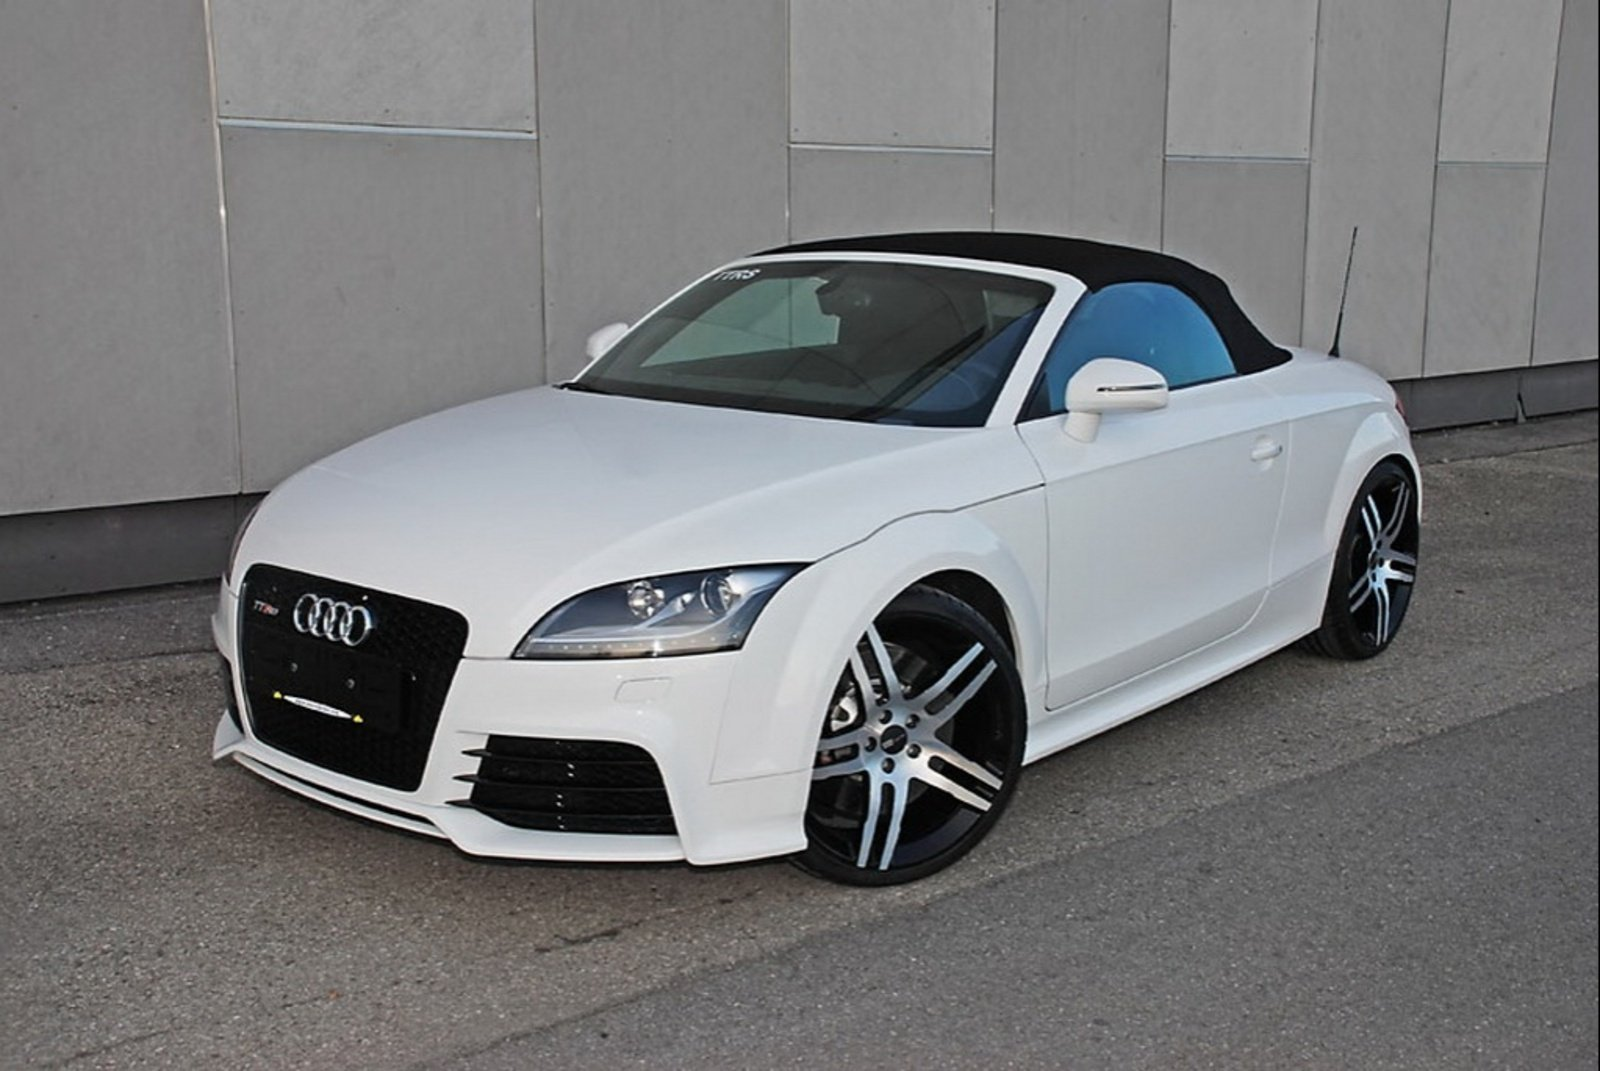 German Car Company That Makes The Tt Coupe